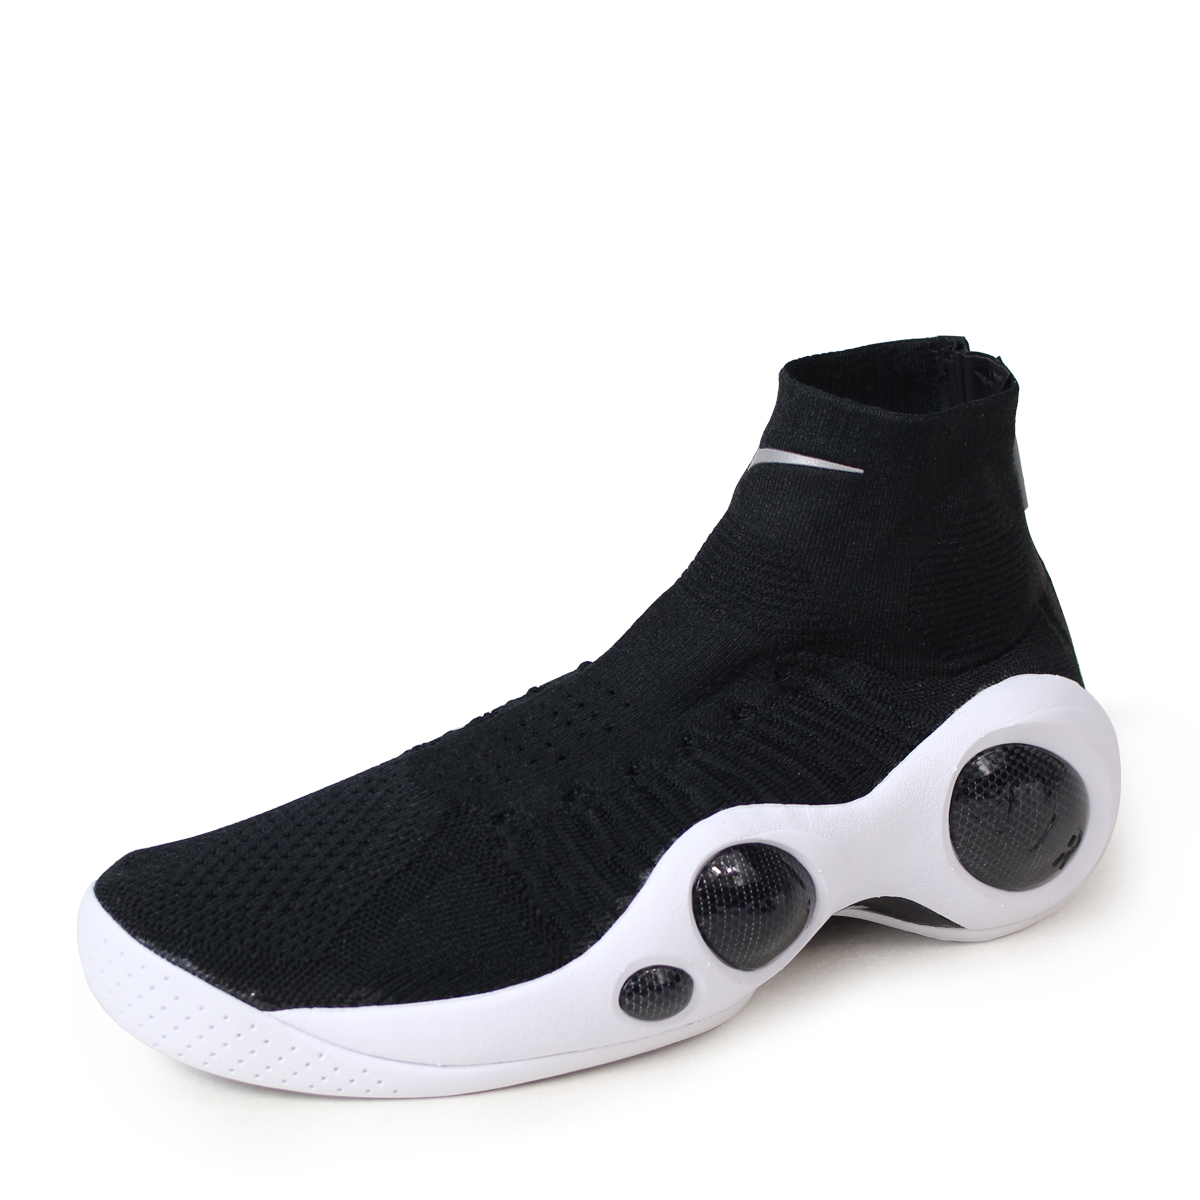 459205ee9ab7 NIKE ZOOM FLIGHT BONAFIDE Nike zoom flight VONA Fido sneakers men  917